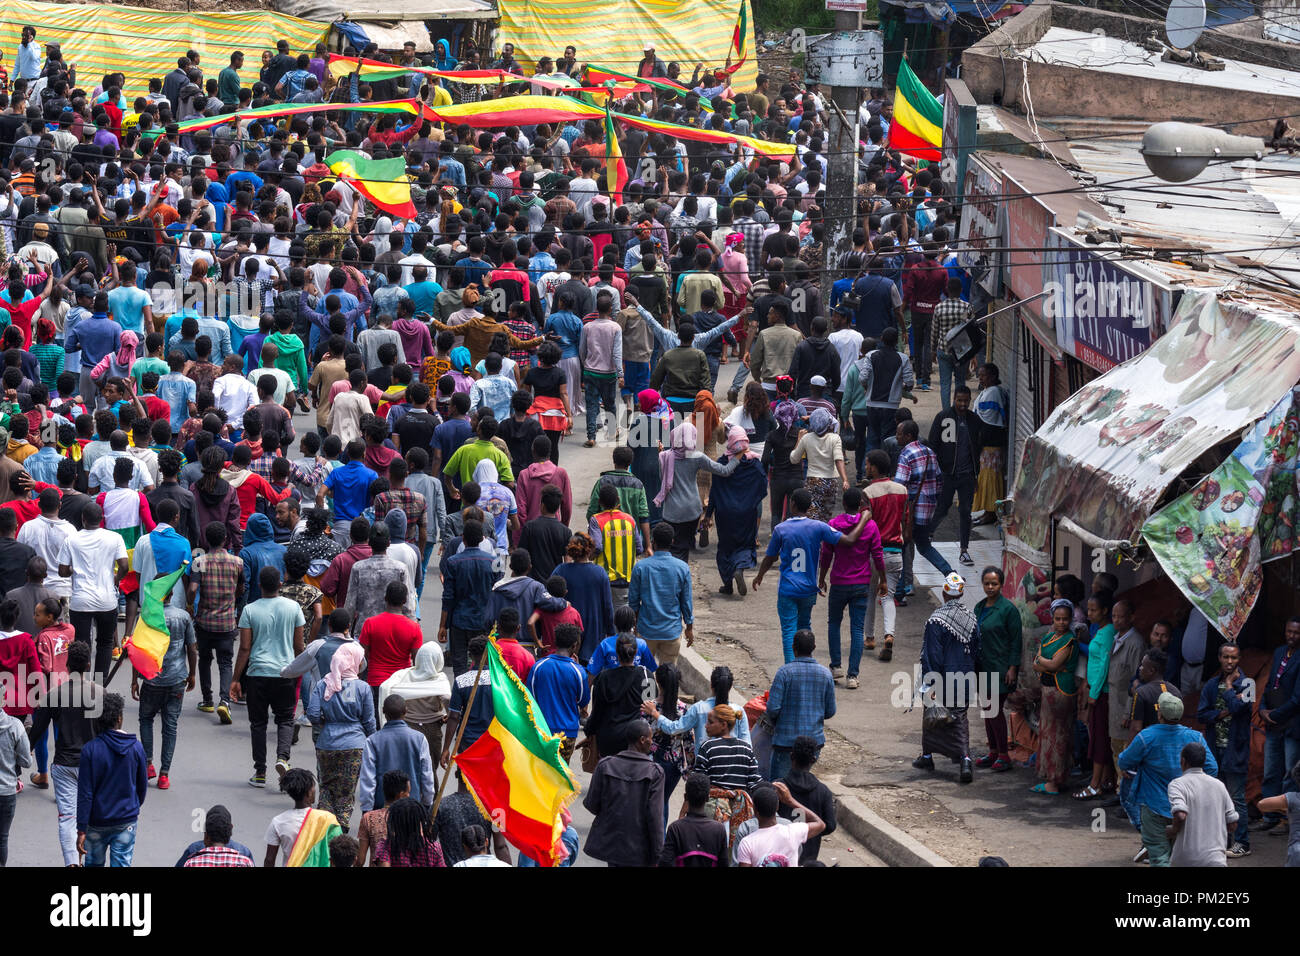 Addis Ababa, Ethiopia . 17th September 2018.  A large number of Addis Ababa residents and youth take to the streets of Piassa with the green, yellow, and red Ethiopian flag (without emblem) to protest the recent unrest in the city prior to and during the return of the Oromo Liberation Front (OLF) members. Credit: David Kirba/Alamy Live News - Stock Image